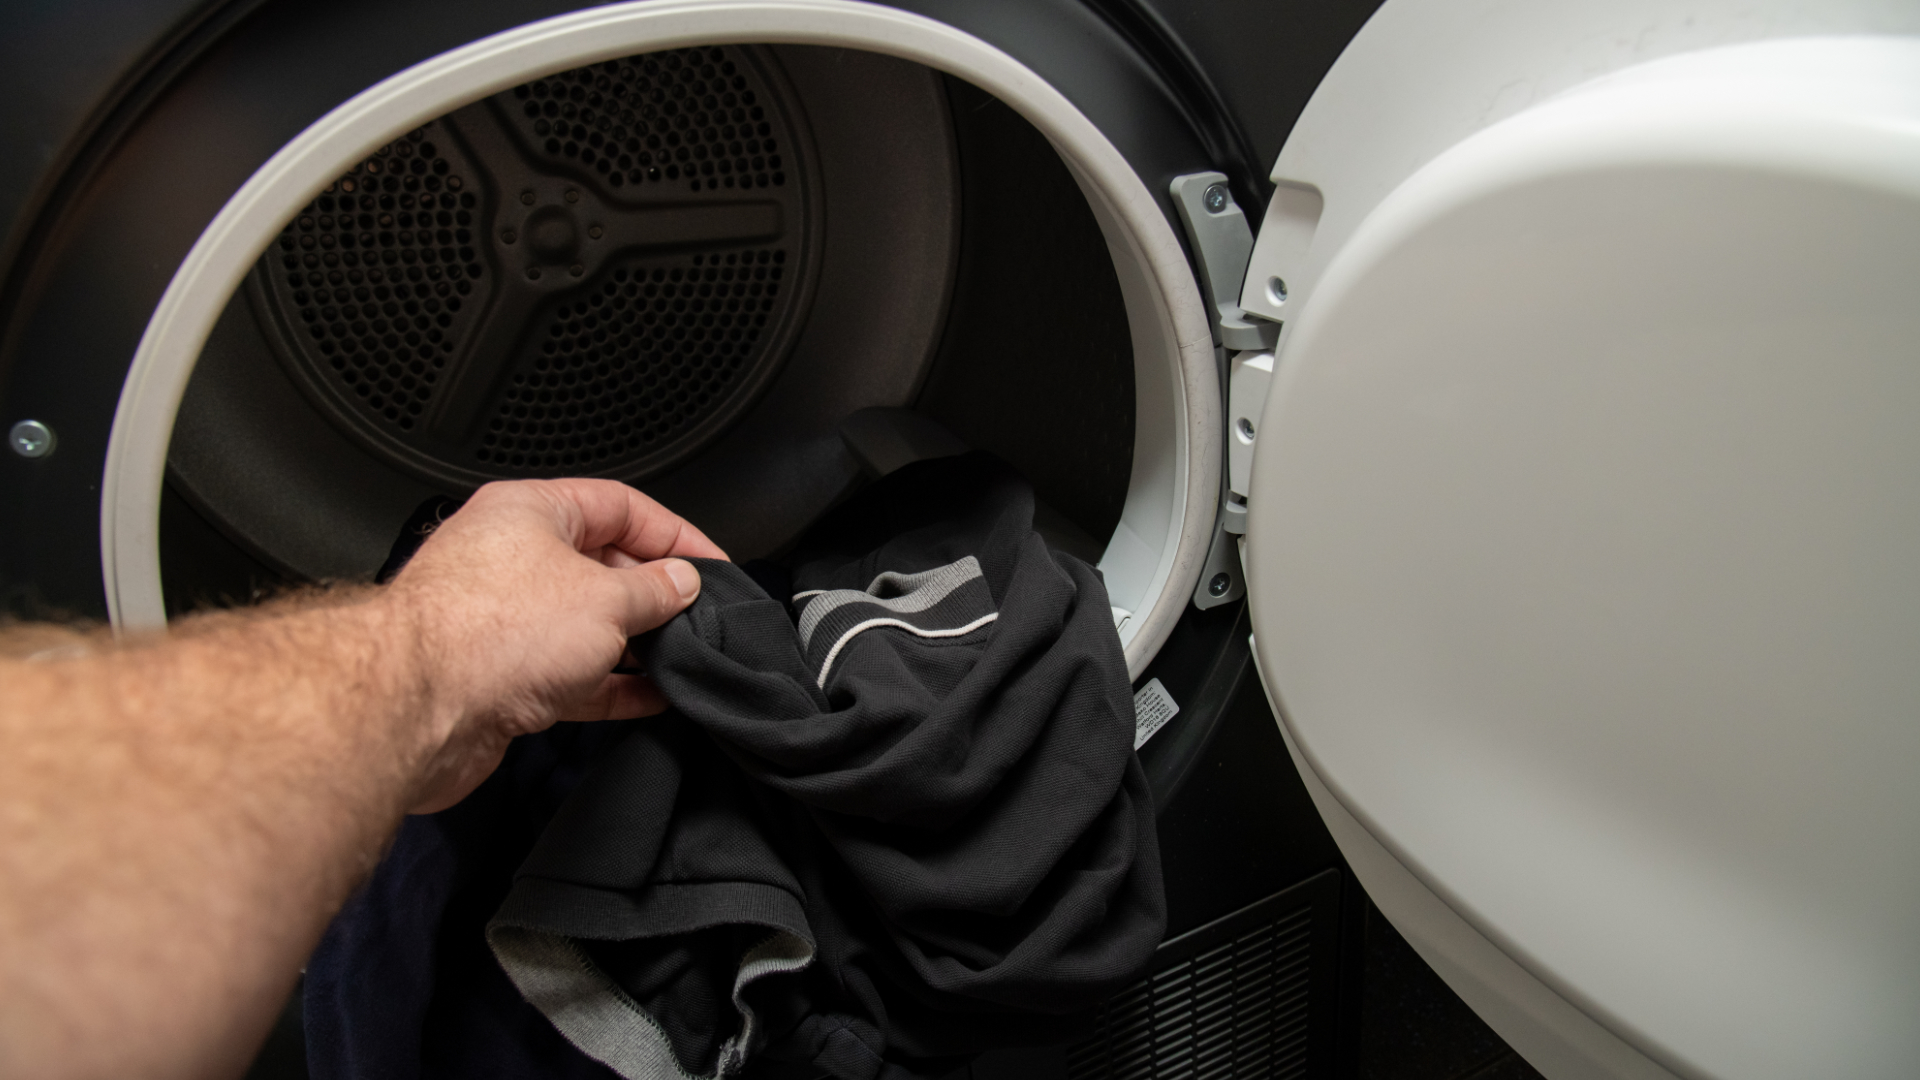 """Featured image for """"How to Fix a Samsung Dryer Not Heating"""""""